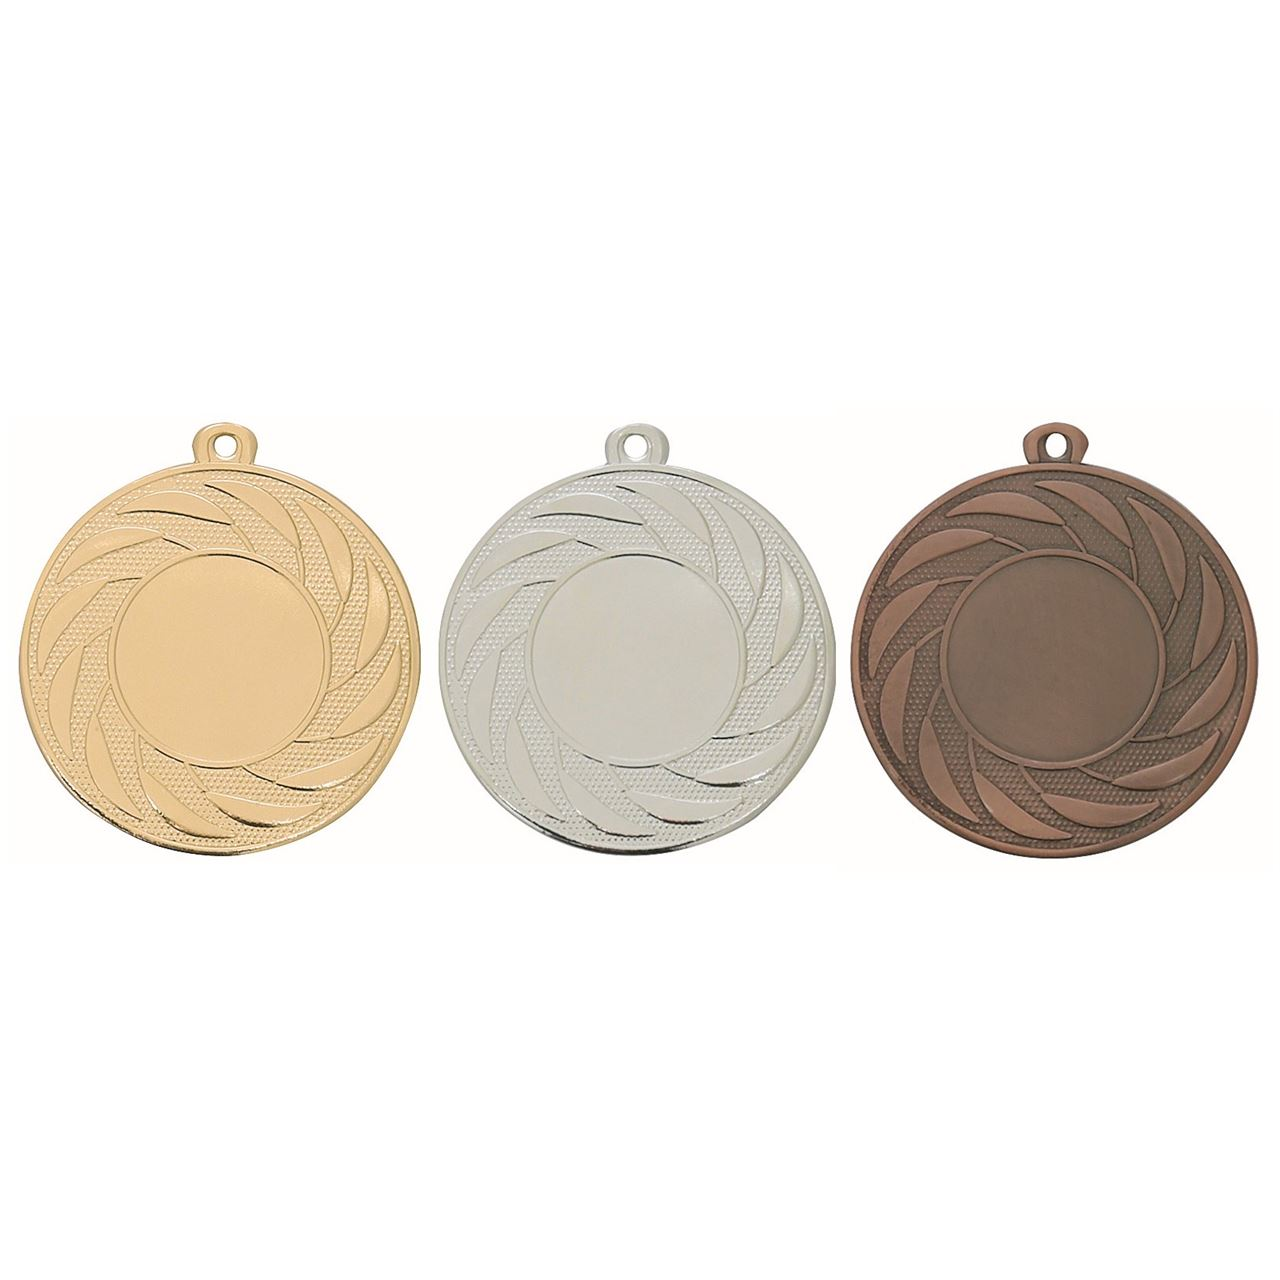 Pack of 100 Radial Medals with Ribbons & Free Logo Inserts (50mm) - M9312.01/SET100